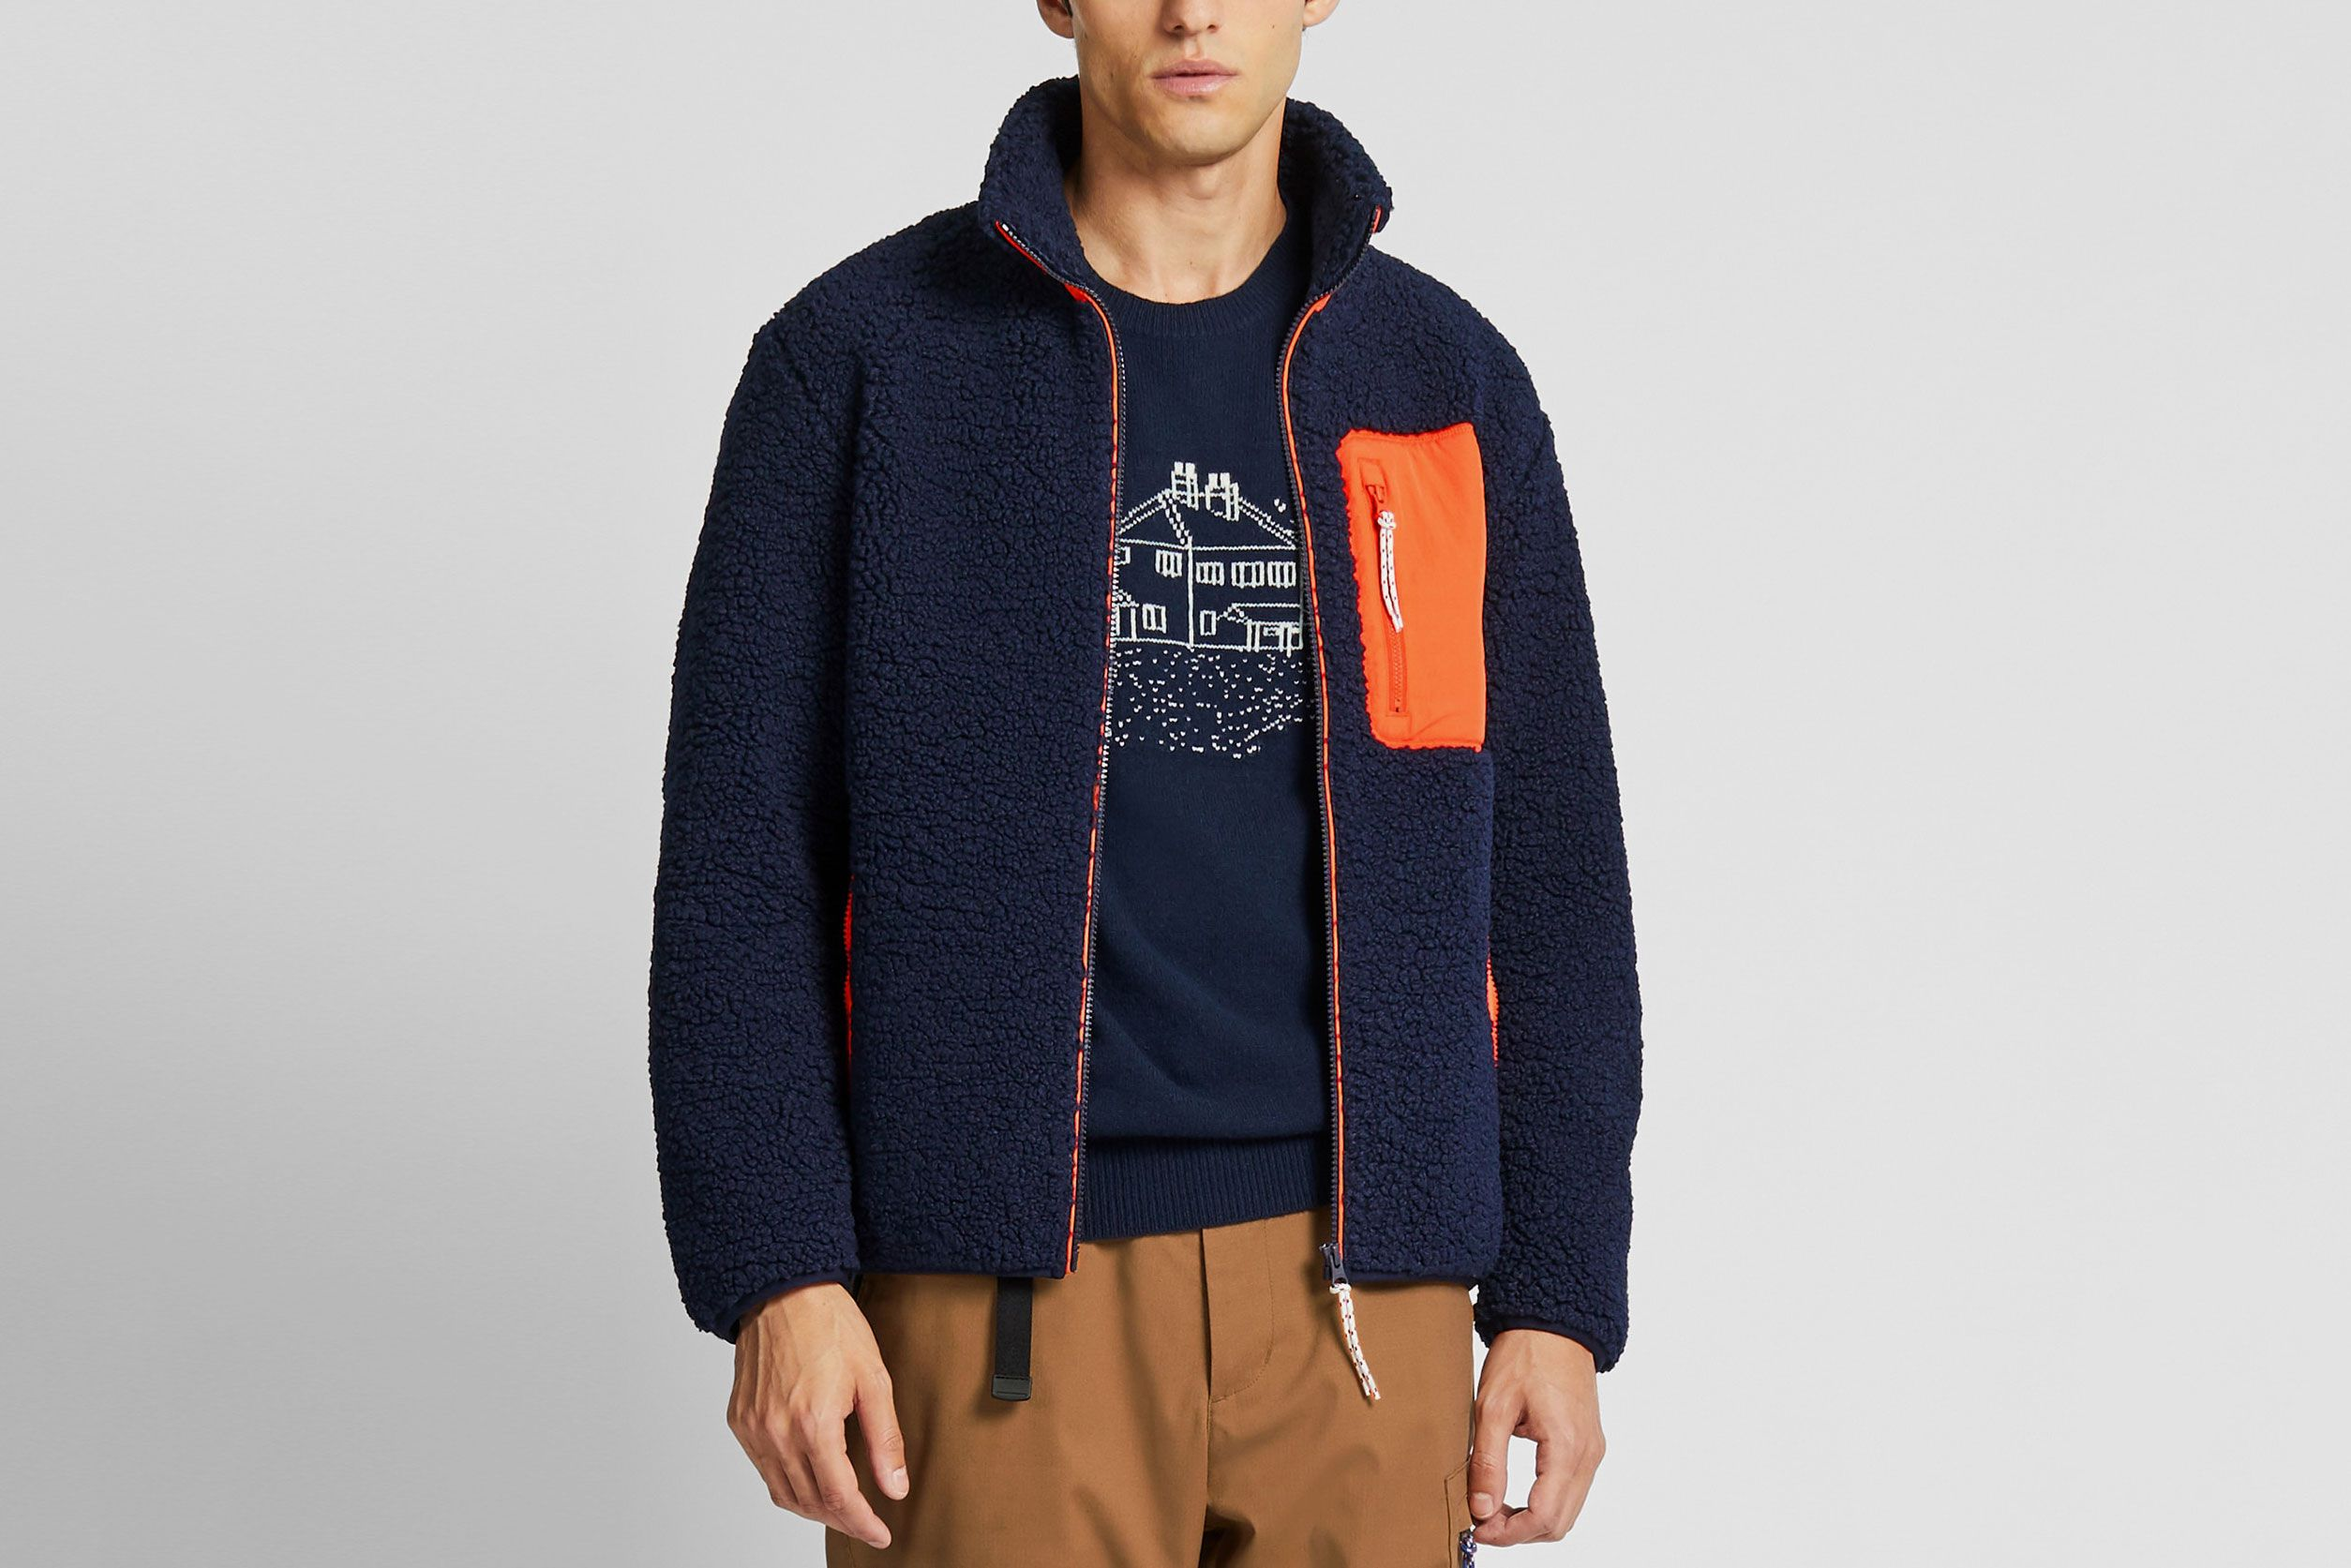 Uniqlo X JW Anderson Windproof Pile-Lined Fleece Full-Zip Jacket